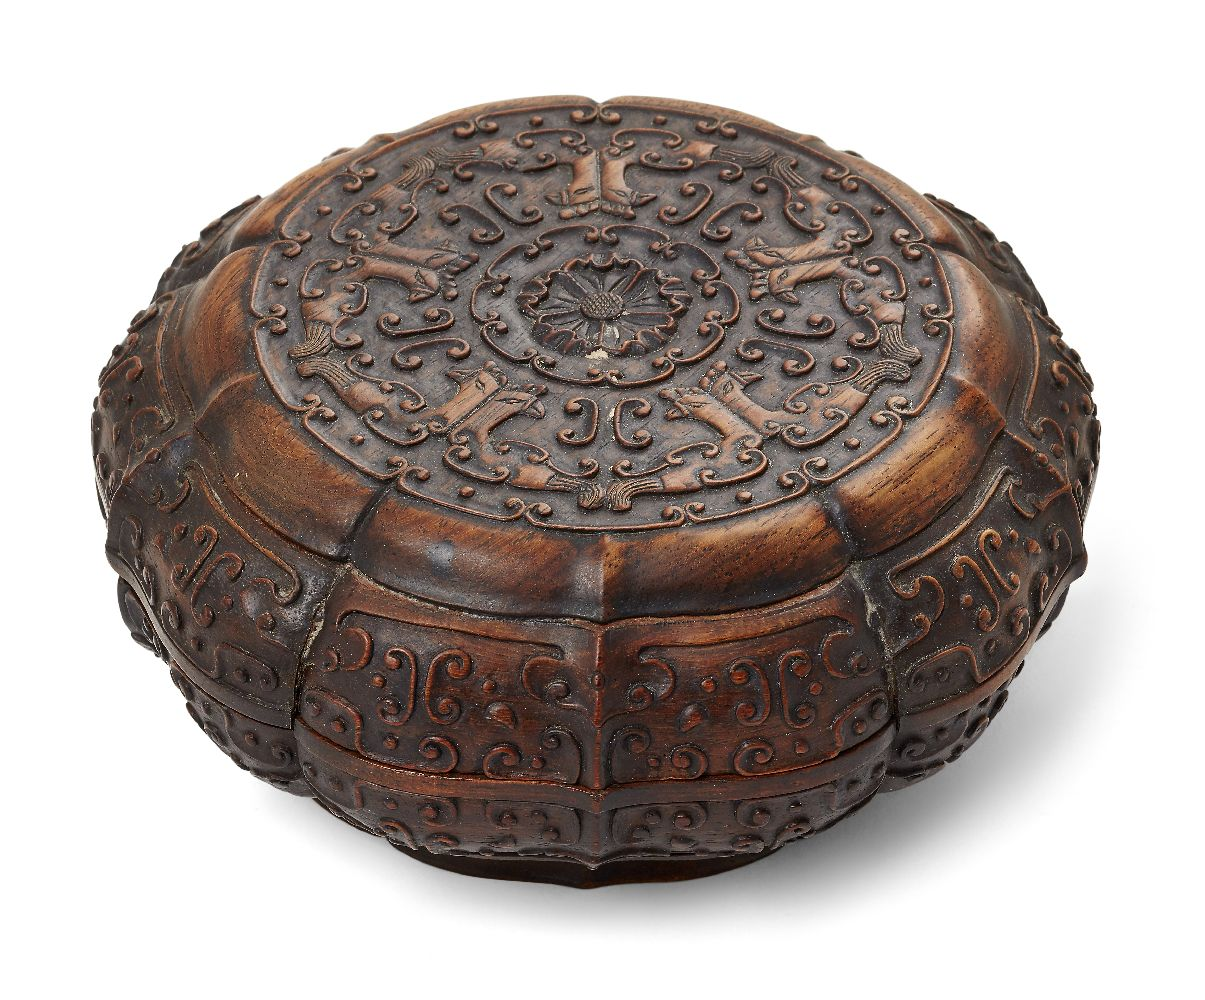 A Chinese carved suanzhi wood treasure box and cover, 18th/19th century, of decagonal lobed form